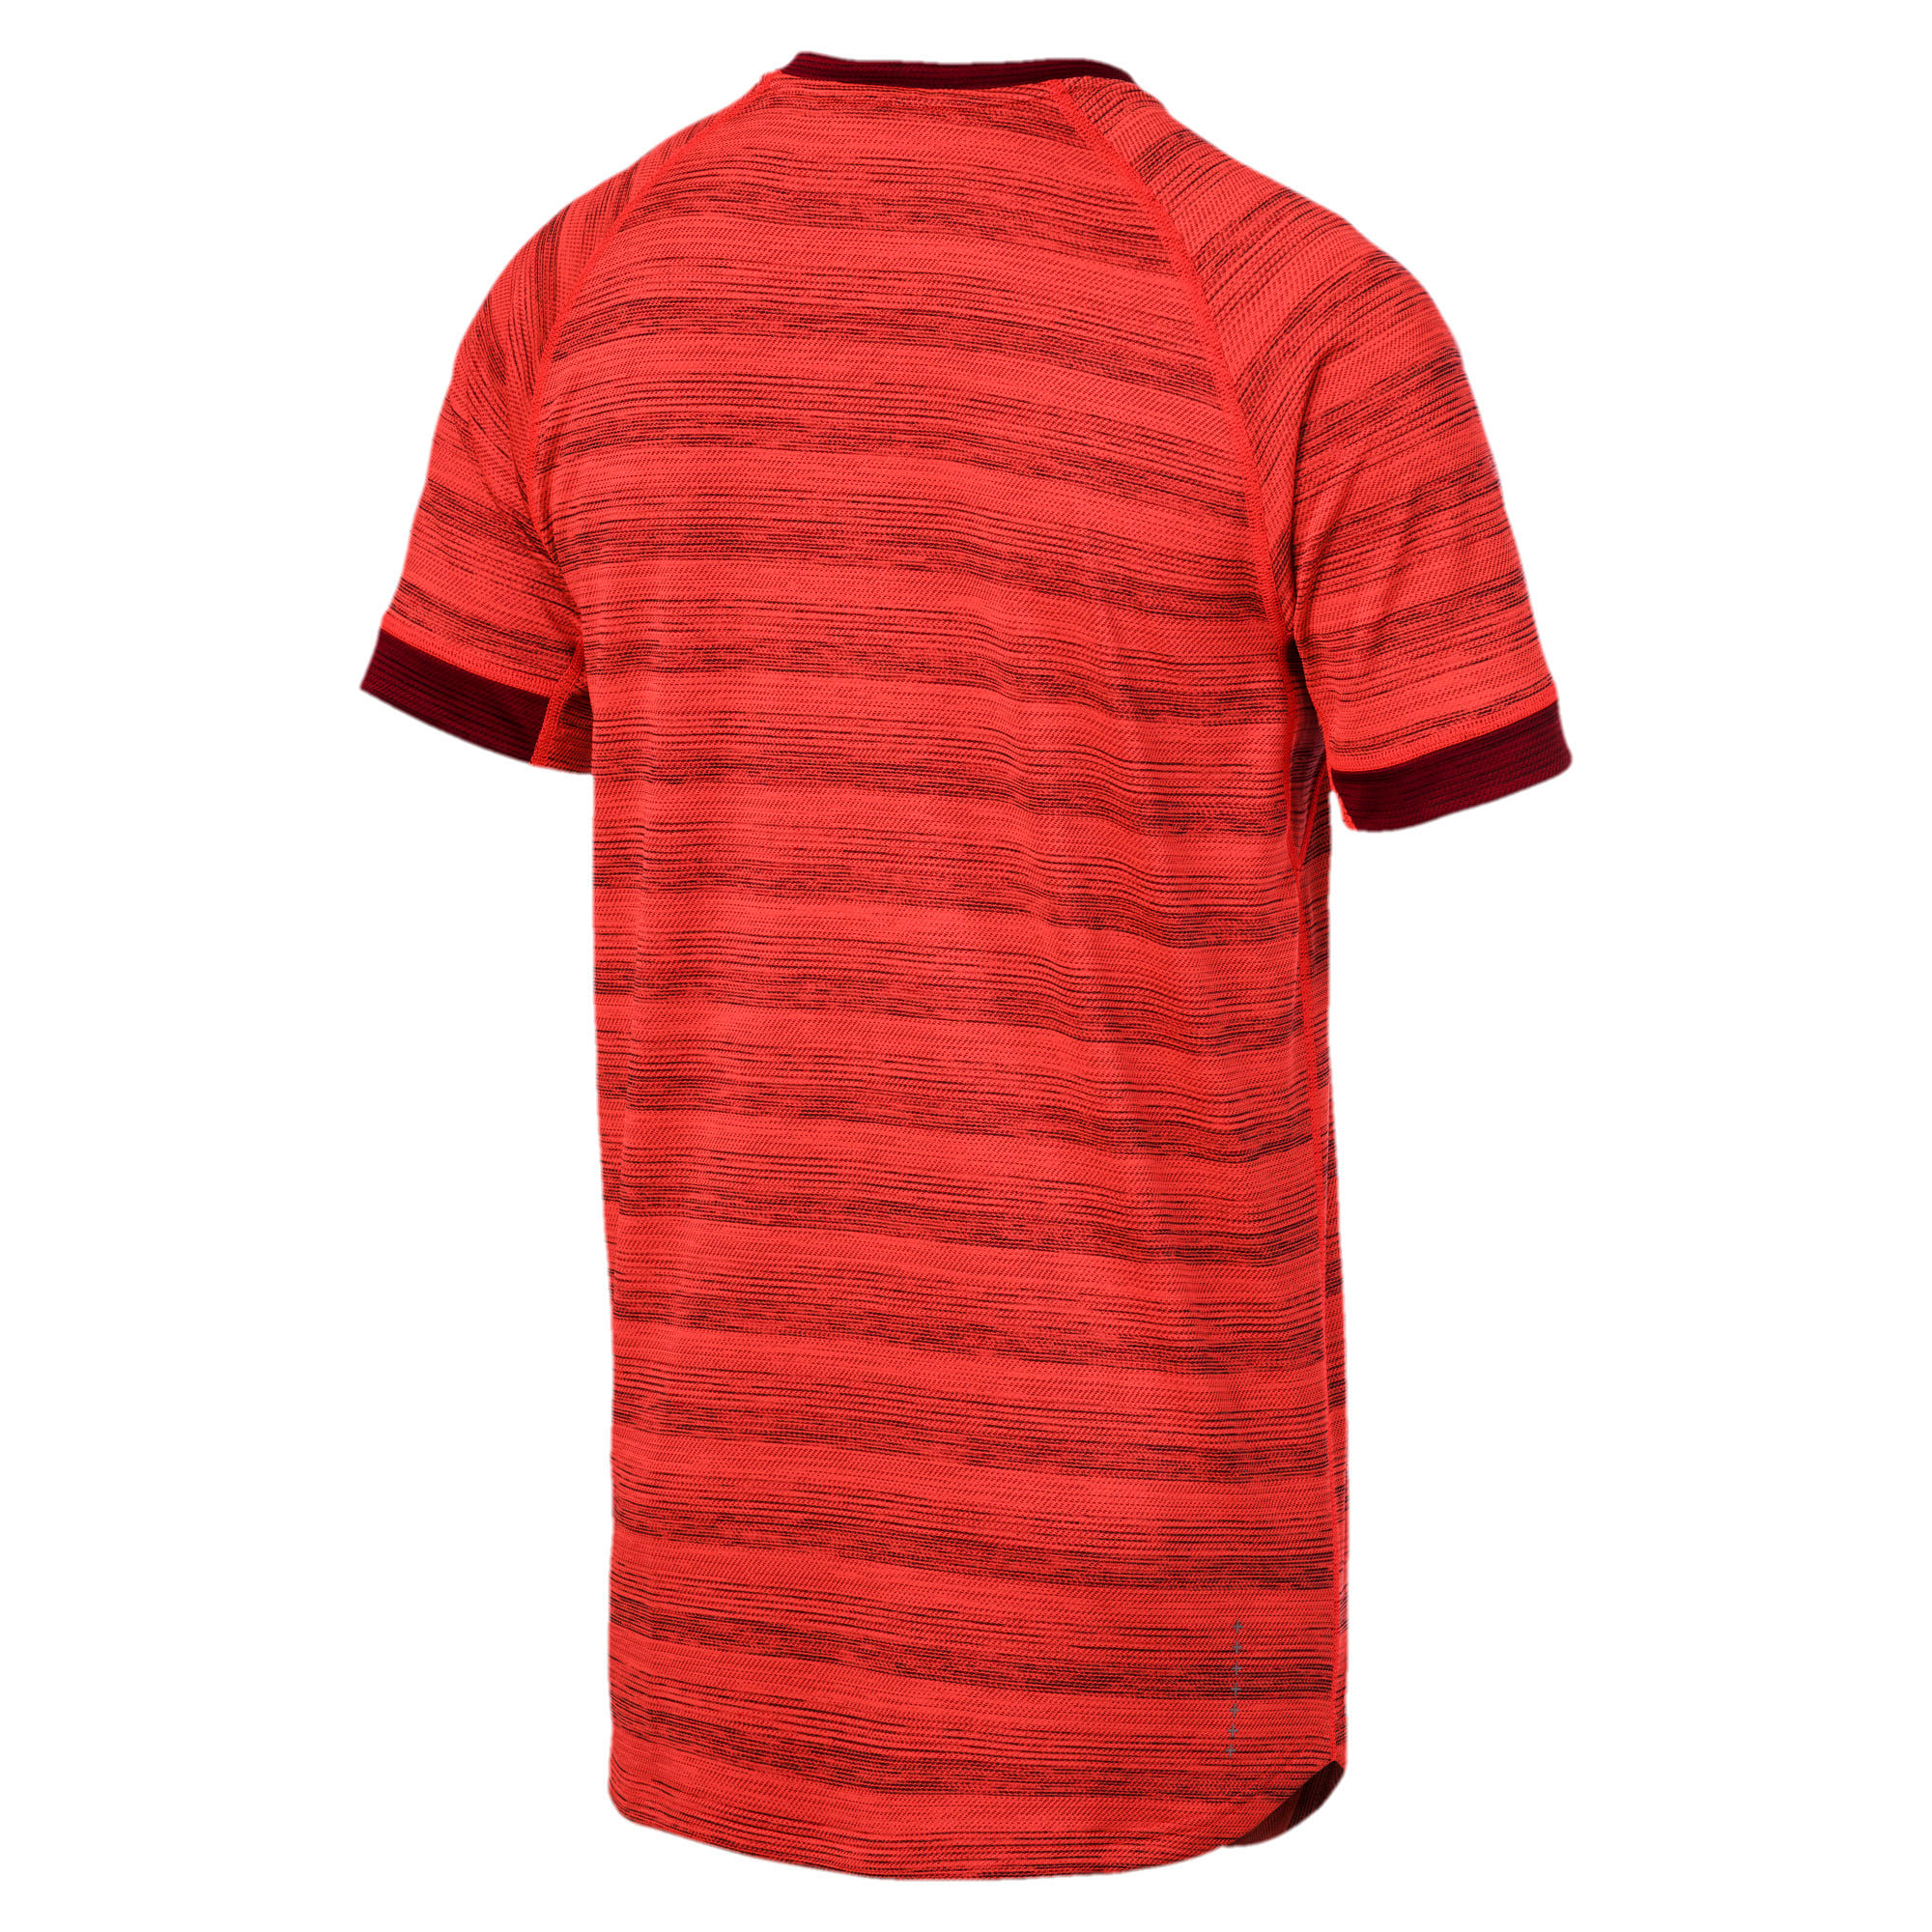 Thumbnail 5 of Get Fast THERMO R+ Men's Running Tee, Nrgy Red Htr-Rhubarb Htr, medium-IND